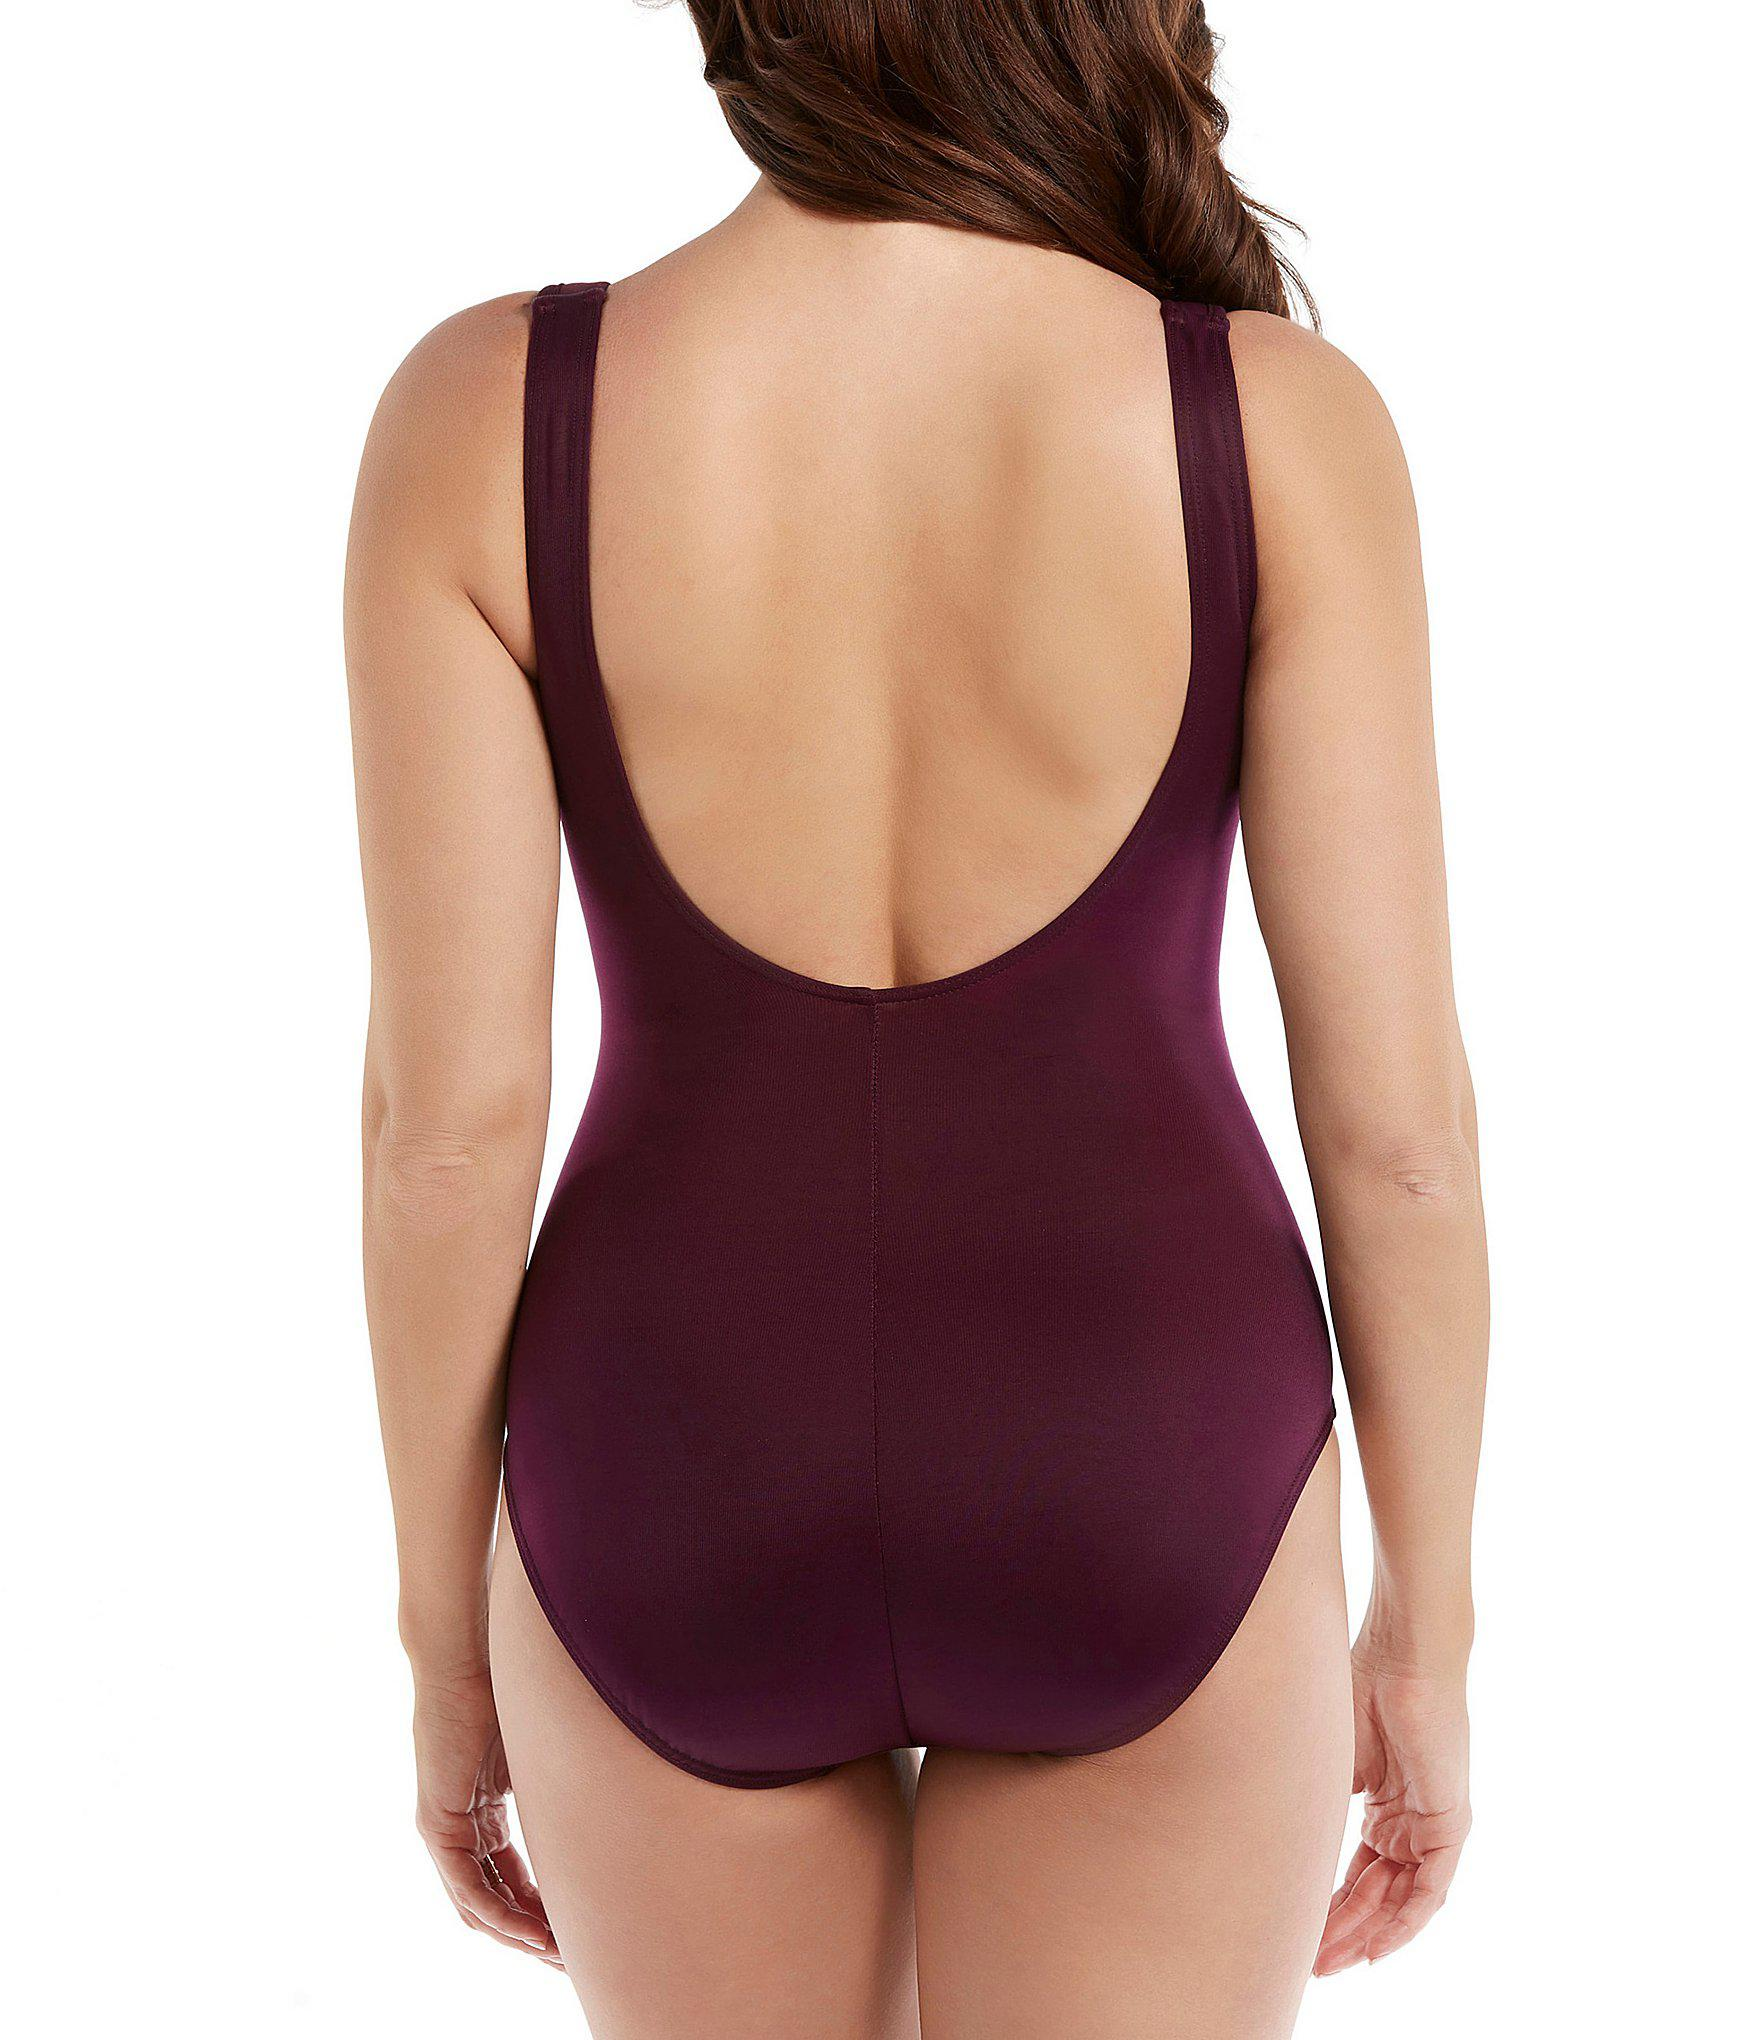 a3d3c5043645c Miraclesuit - Purple Must Have Escape Underwire Tummy Control One Piece  Swimsuit - Lyst. View fullscreen